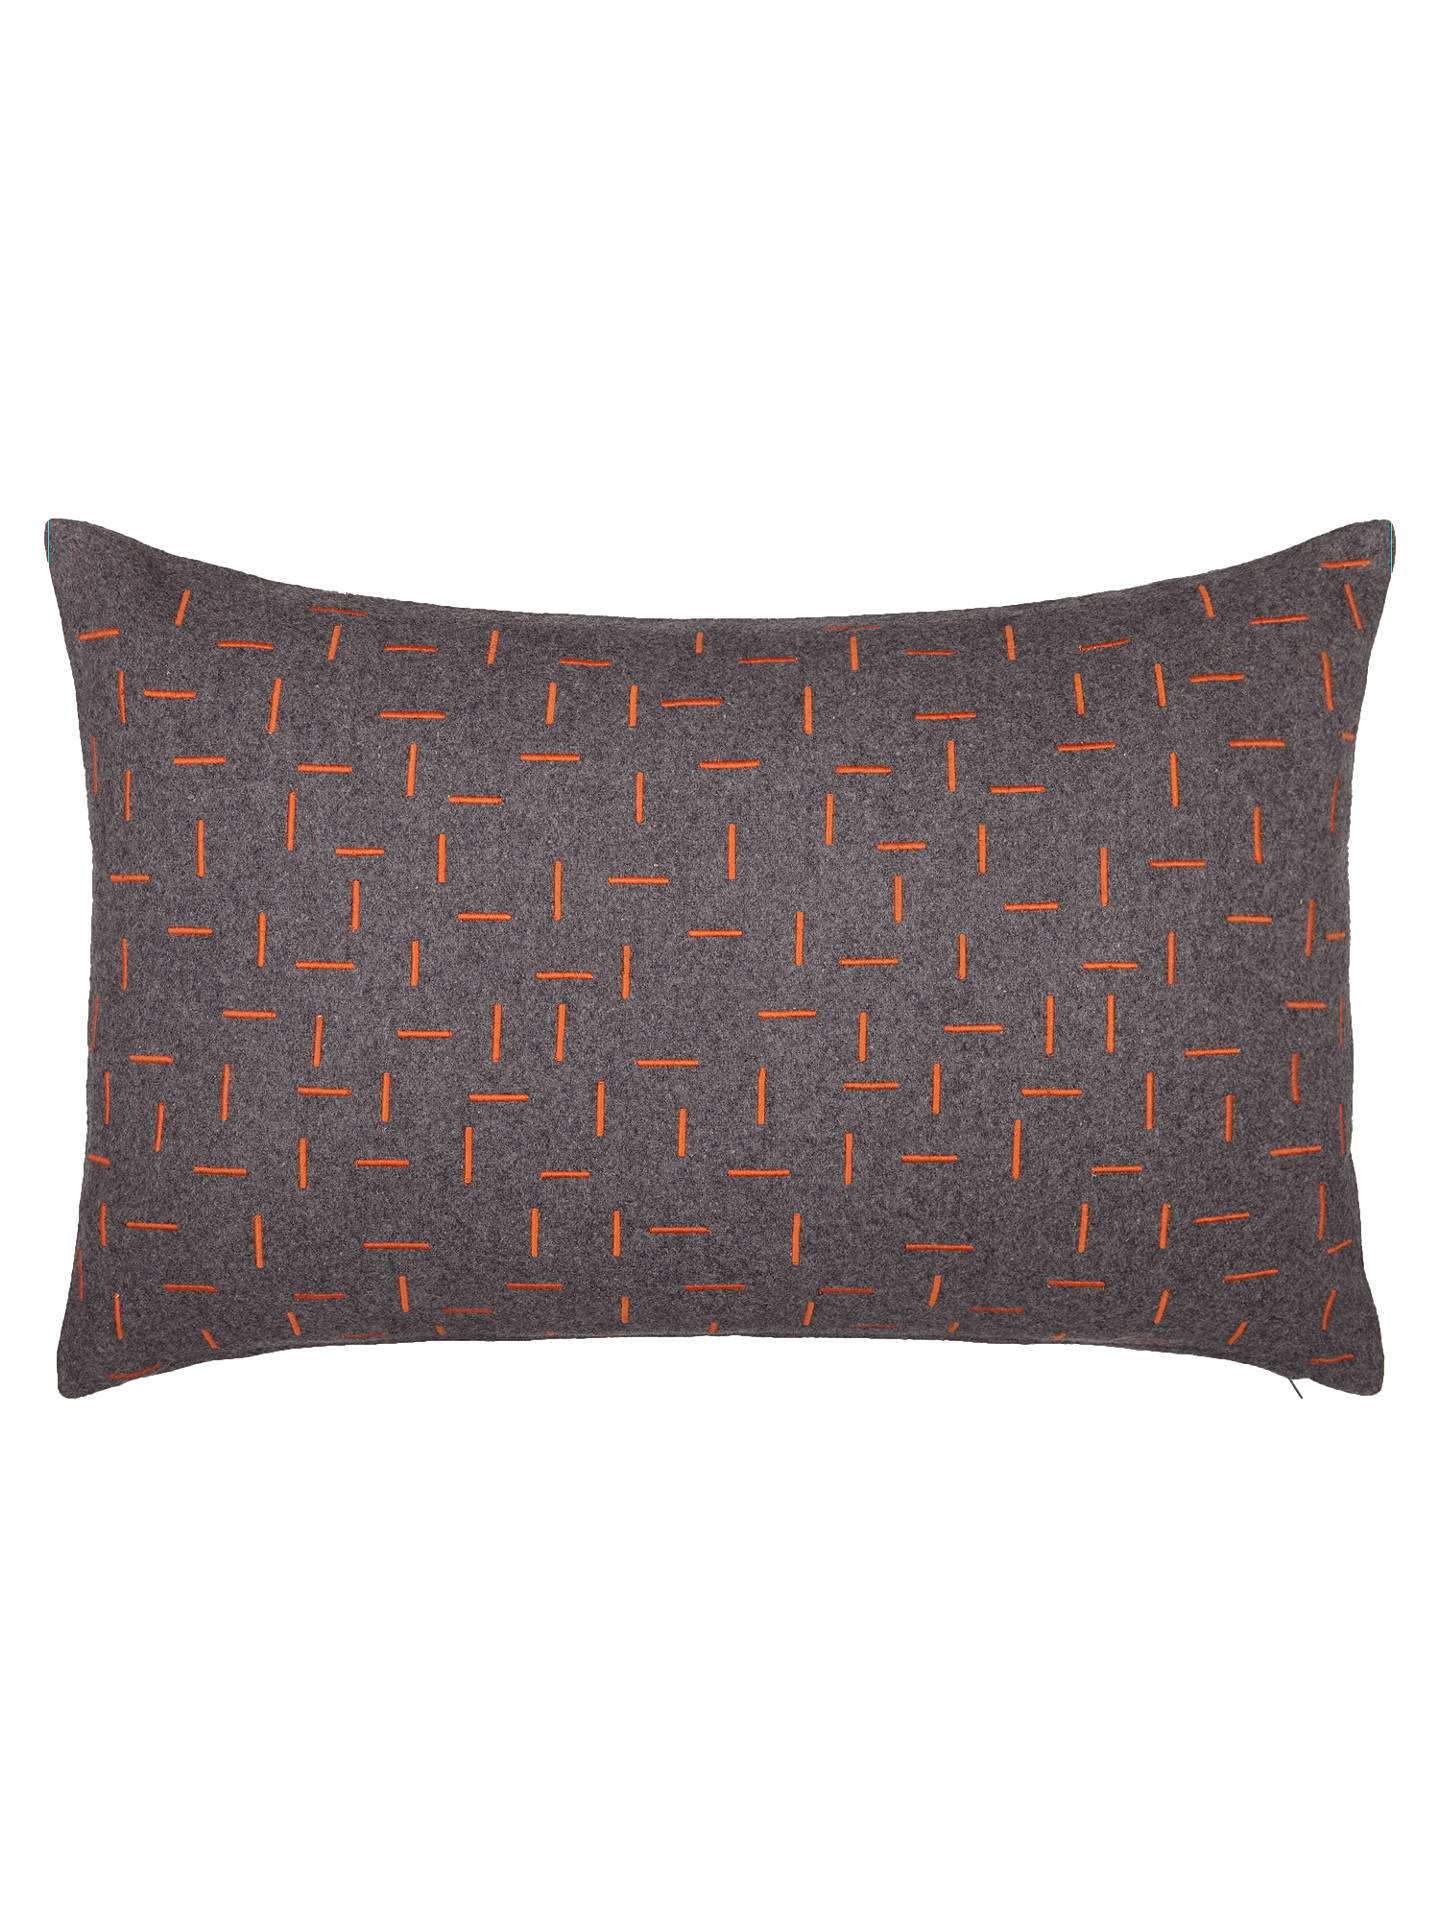 BuyHouse by John Lewis Fragment Cushion, Chilli Online at johnlewis.com